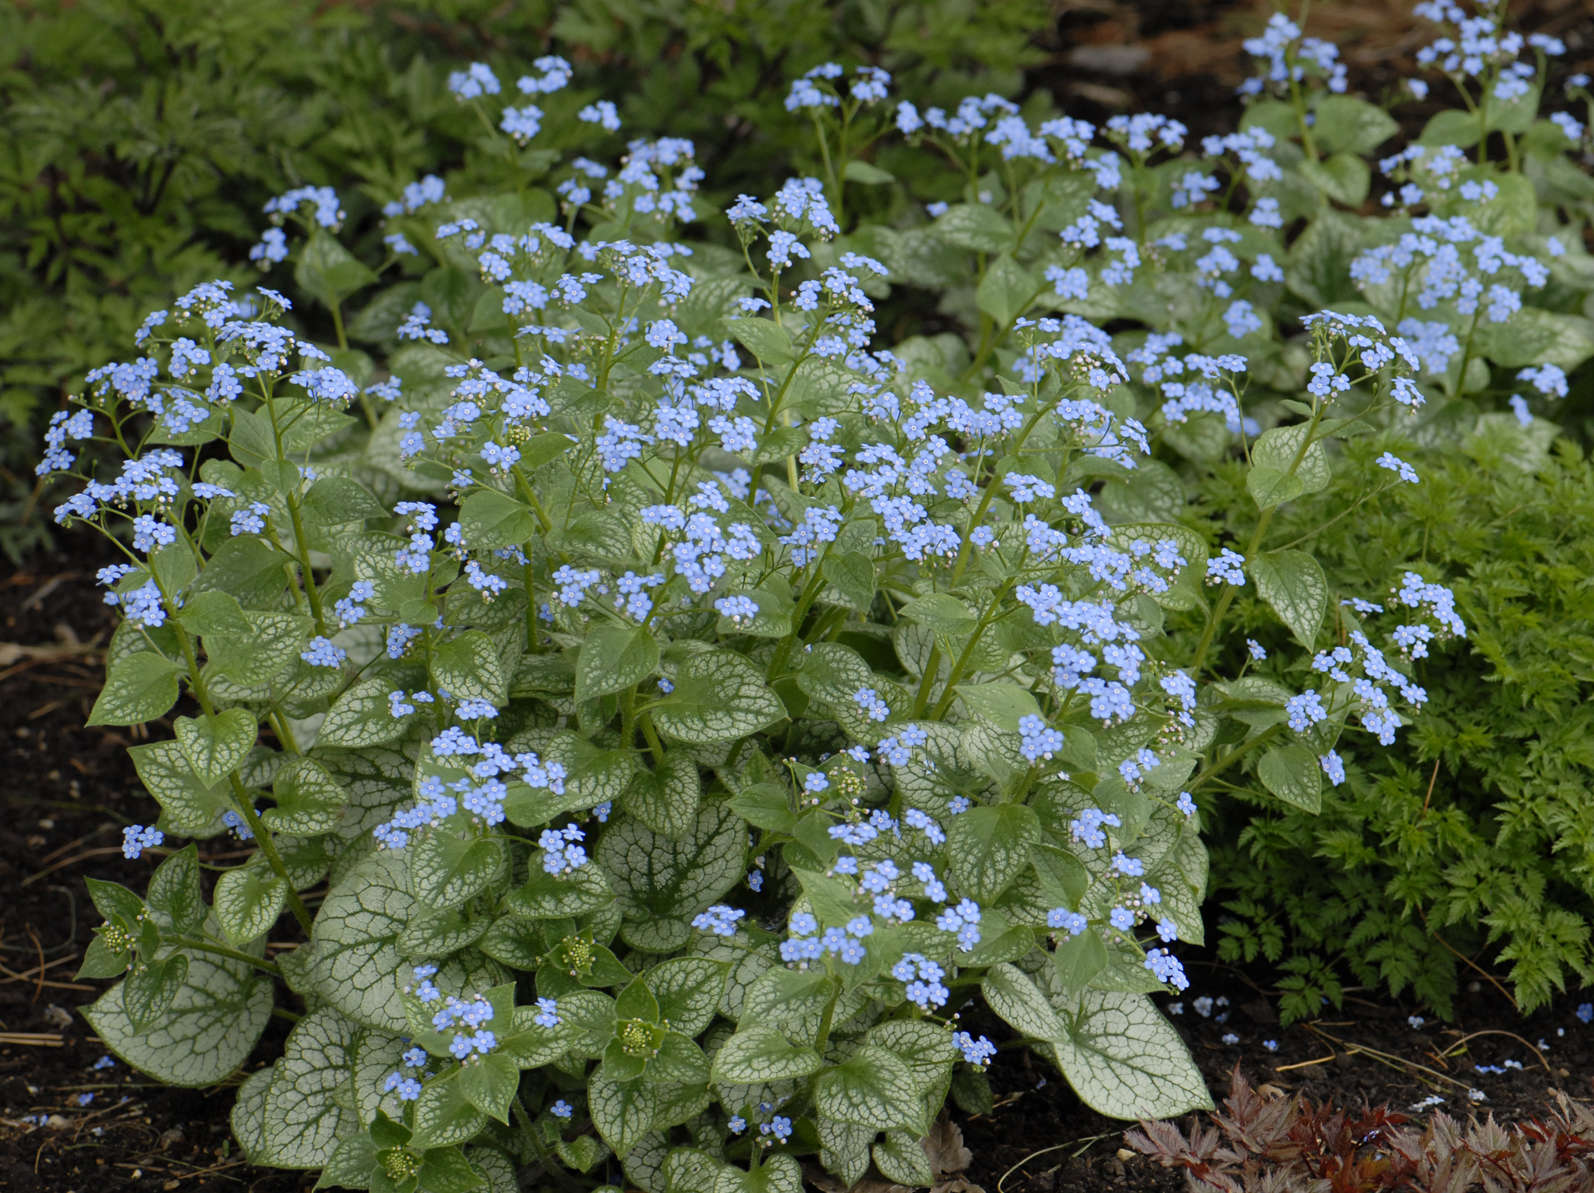 2012 Perennial Plant of the Year — Brunnera <i>m.</i> 'Jack Frost'